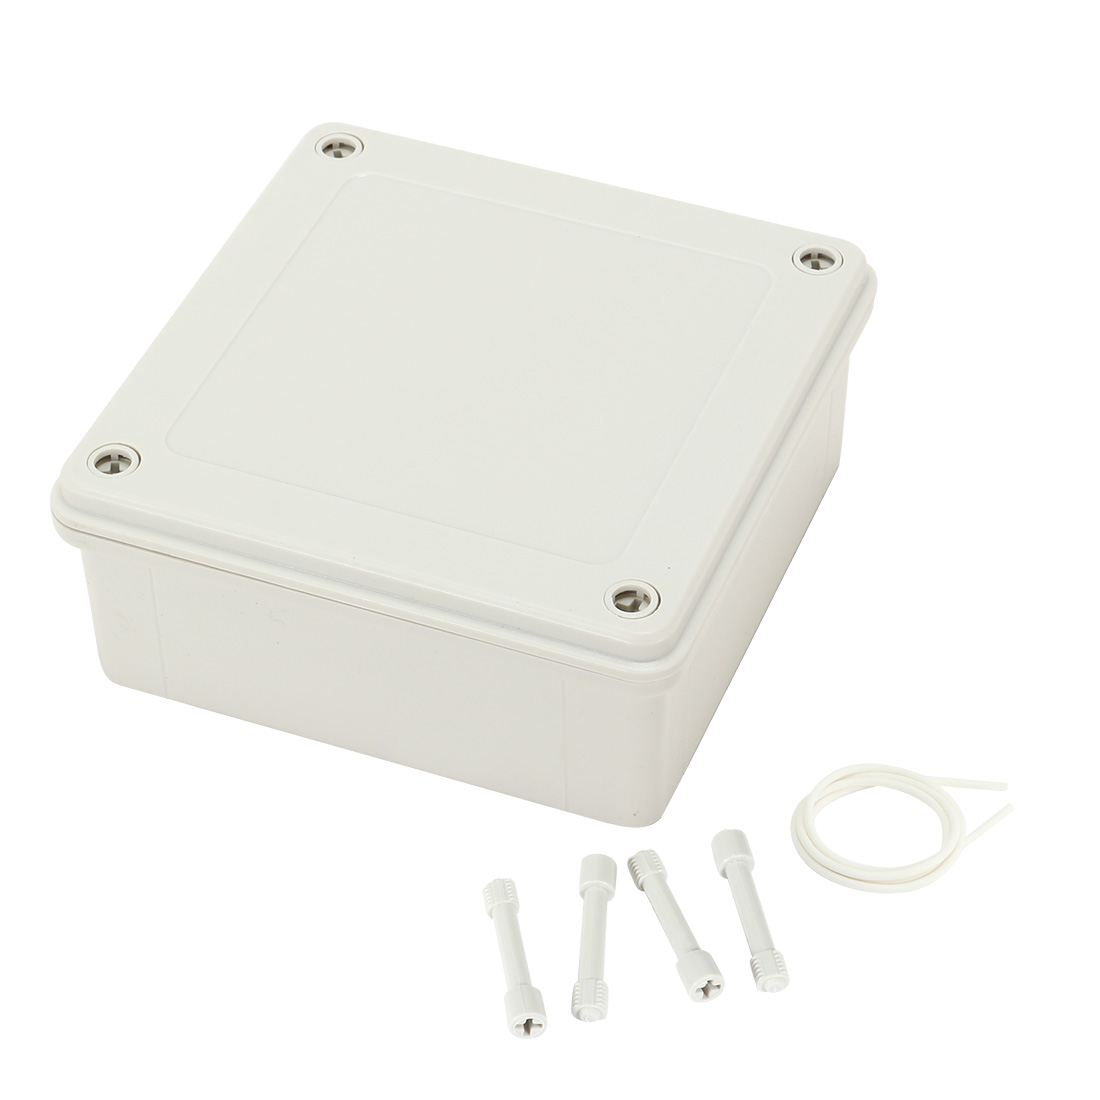 "5.7""x5.7""x2.3""(145mmx145mmx60mm) ABS Junction Box Universal Electric Project Enclosure"